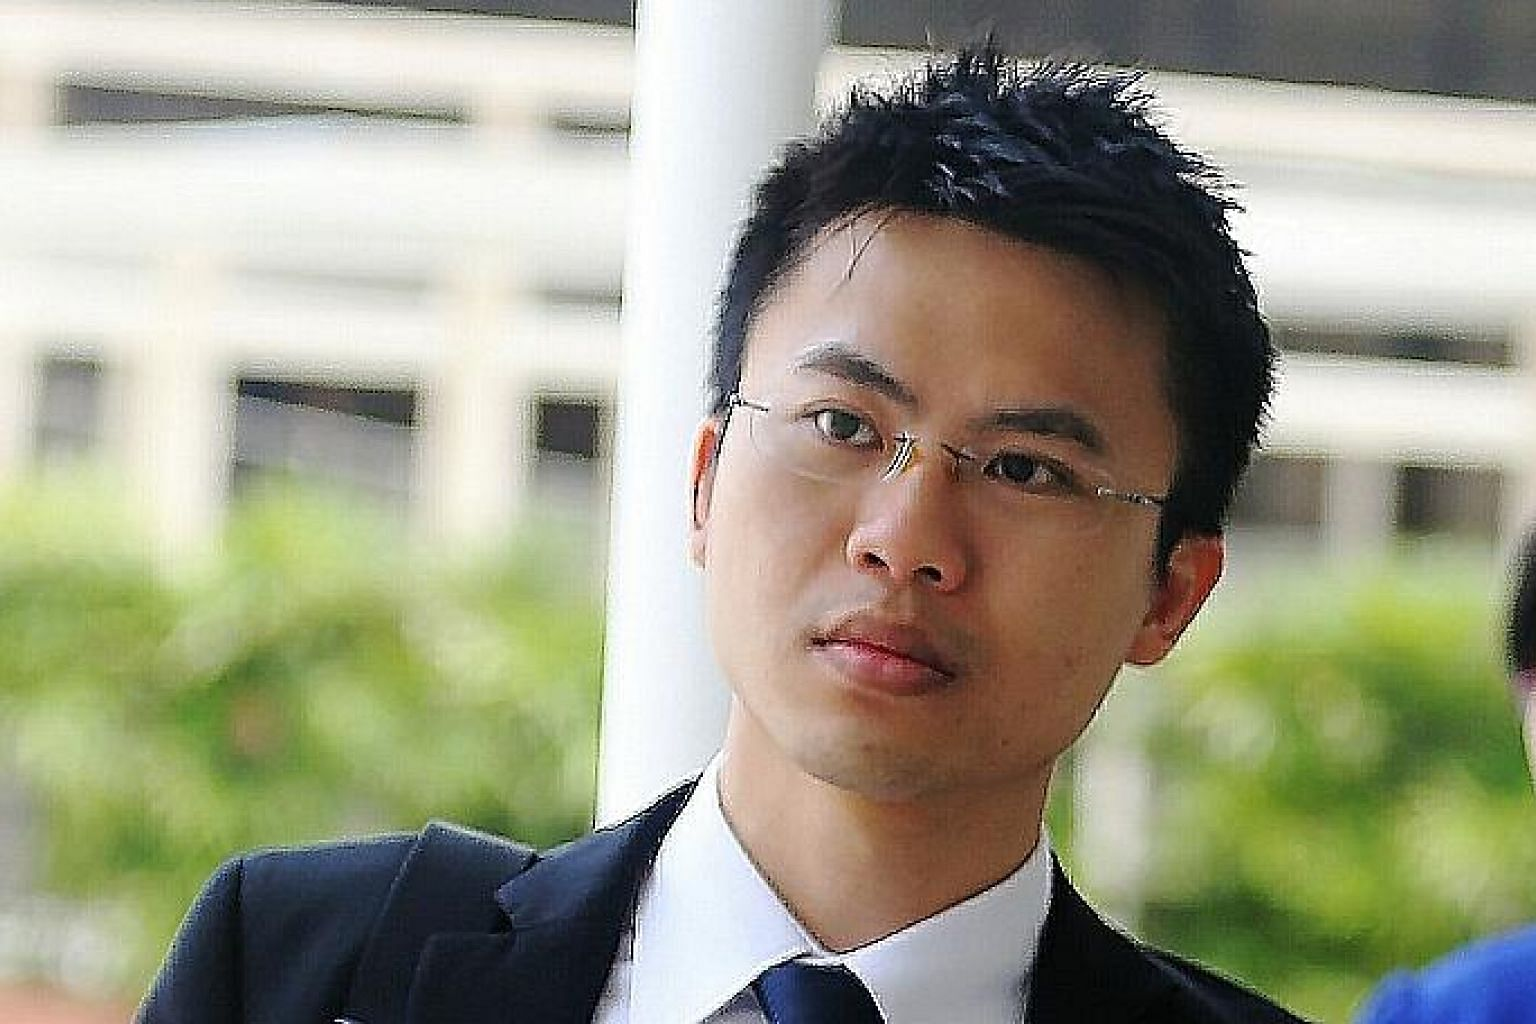 Dental surgeon Hoo Swee Tiang, who was jailed six weeks last year for molesting a woman on an MRT train, will be suspended for six months and has to work for two years under the supervision of two dentists before he can practise on his own again.